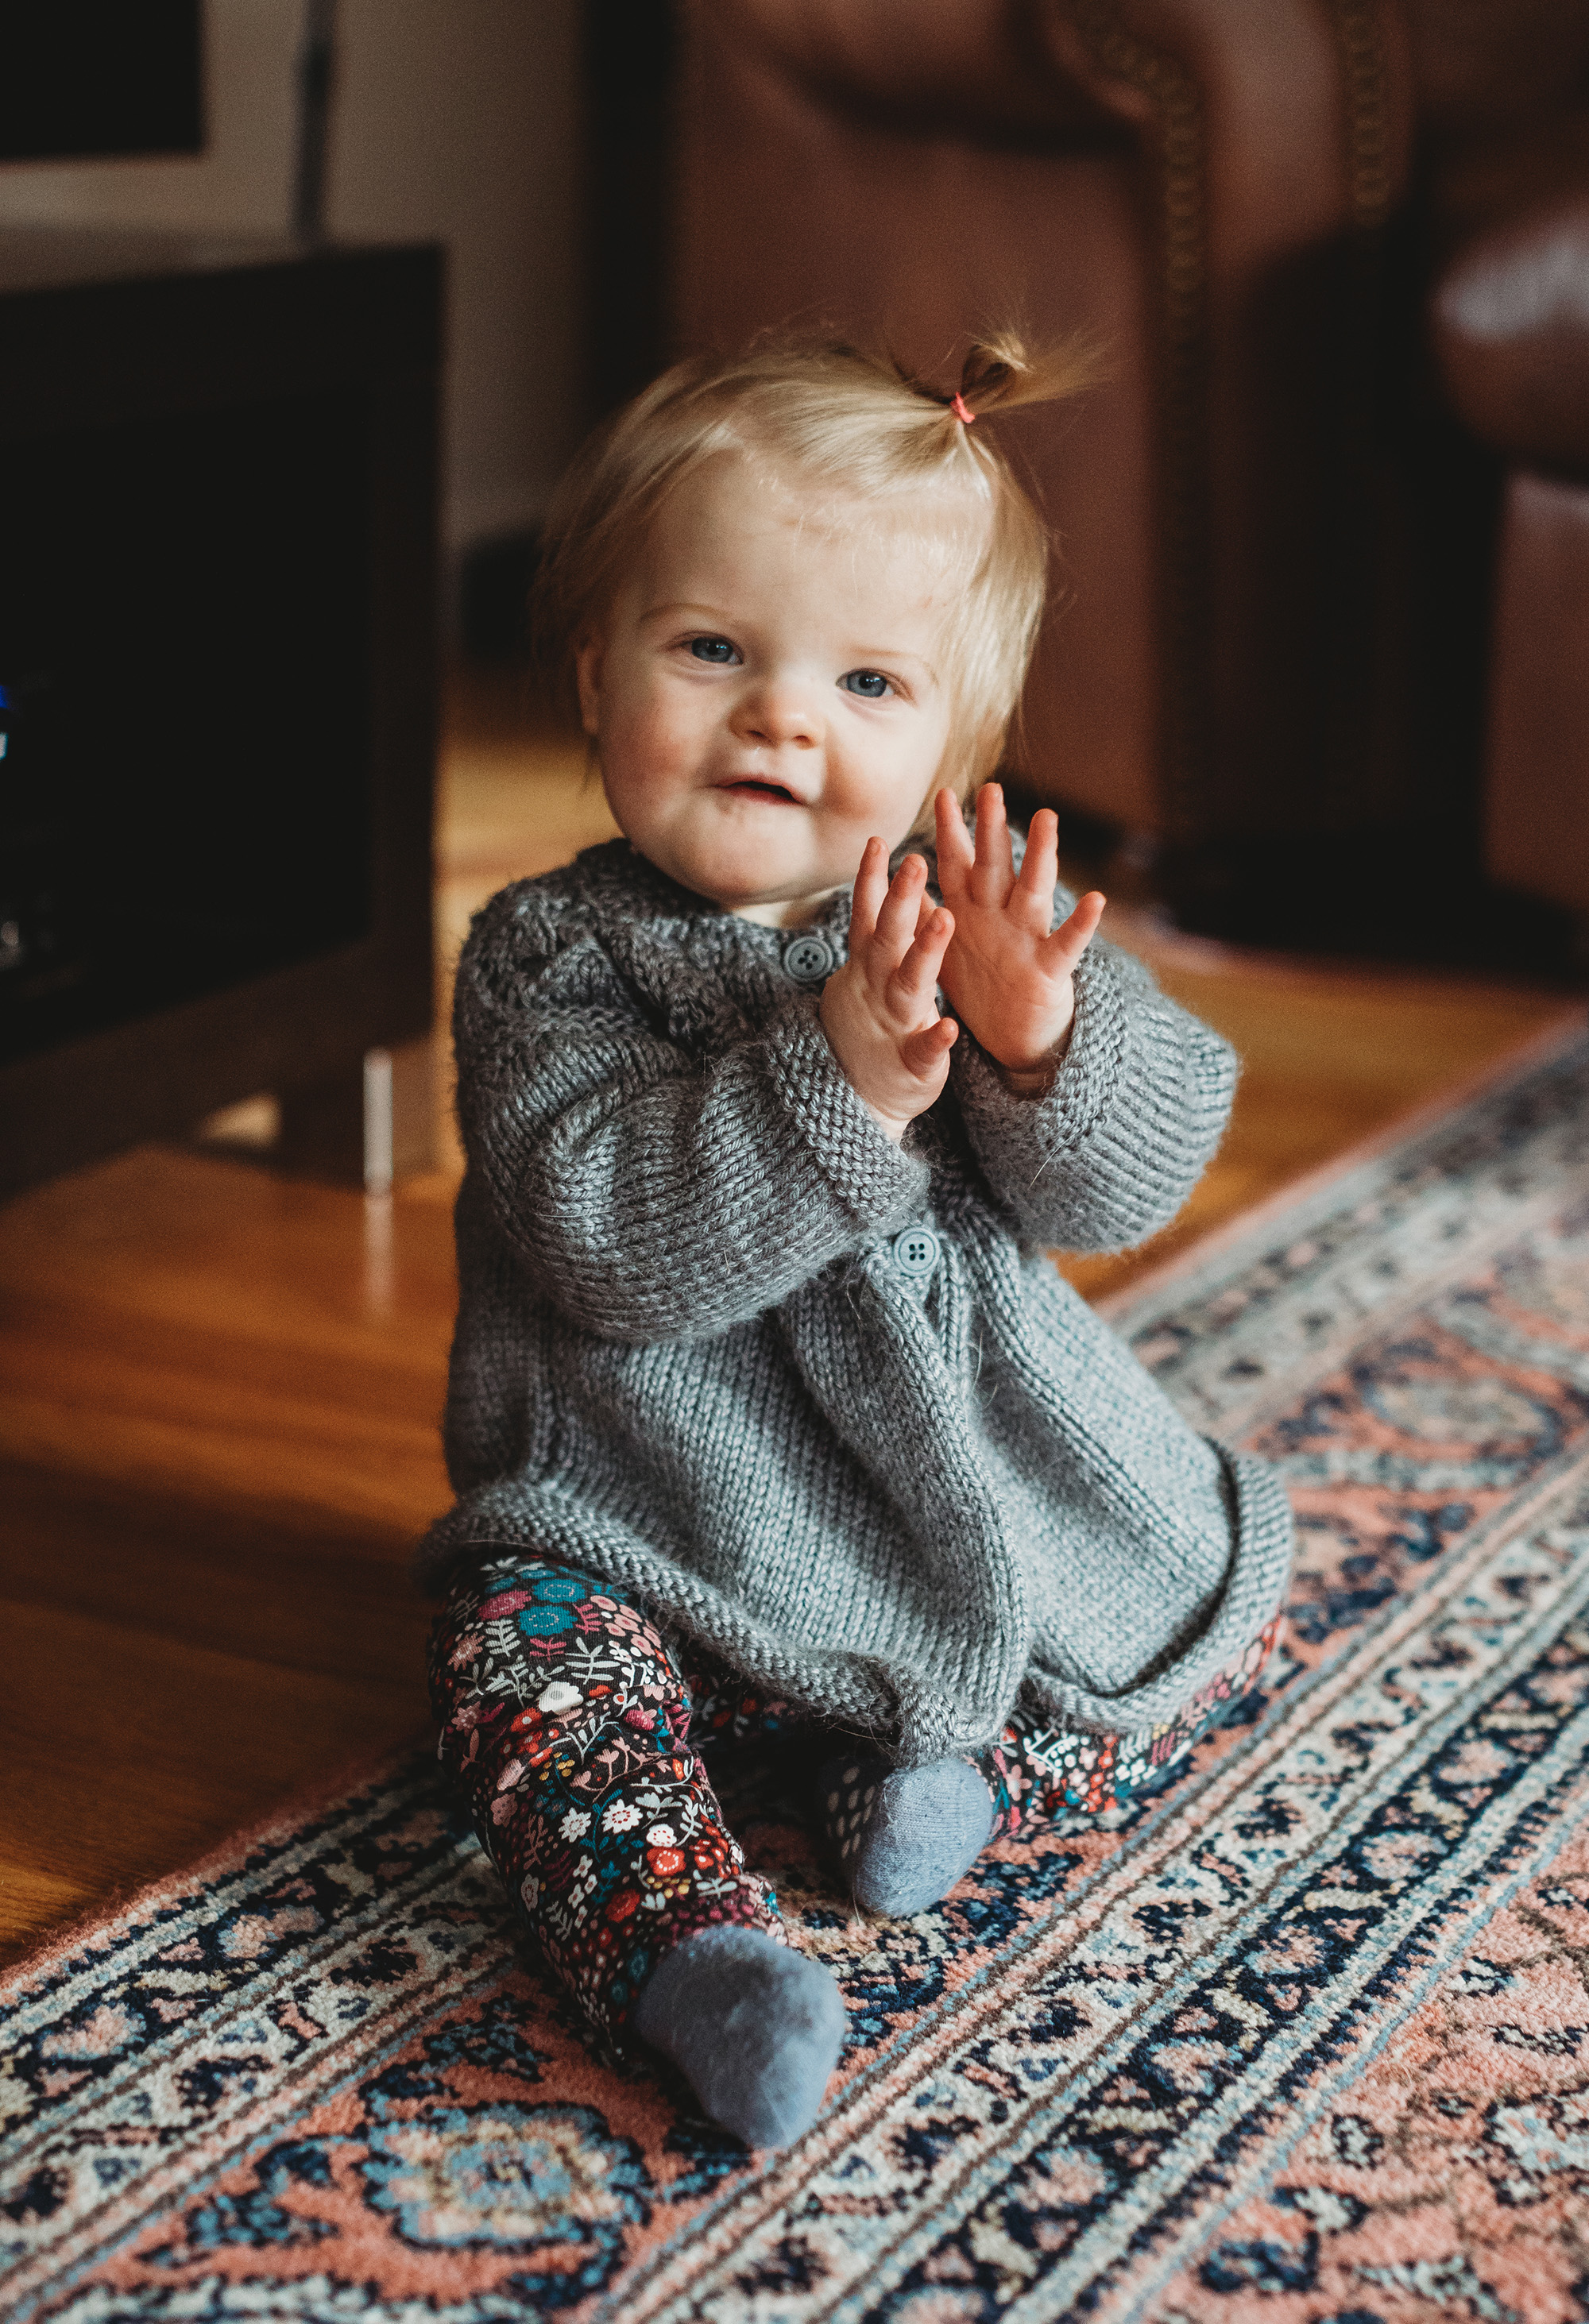 Cable knit sweaters. Baby fashion tips from family photographer Boston. Lifestyle, natural light.